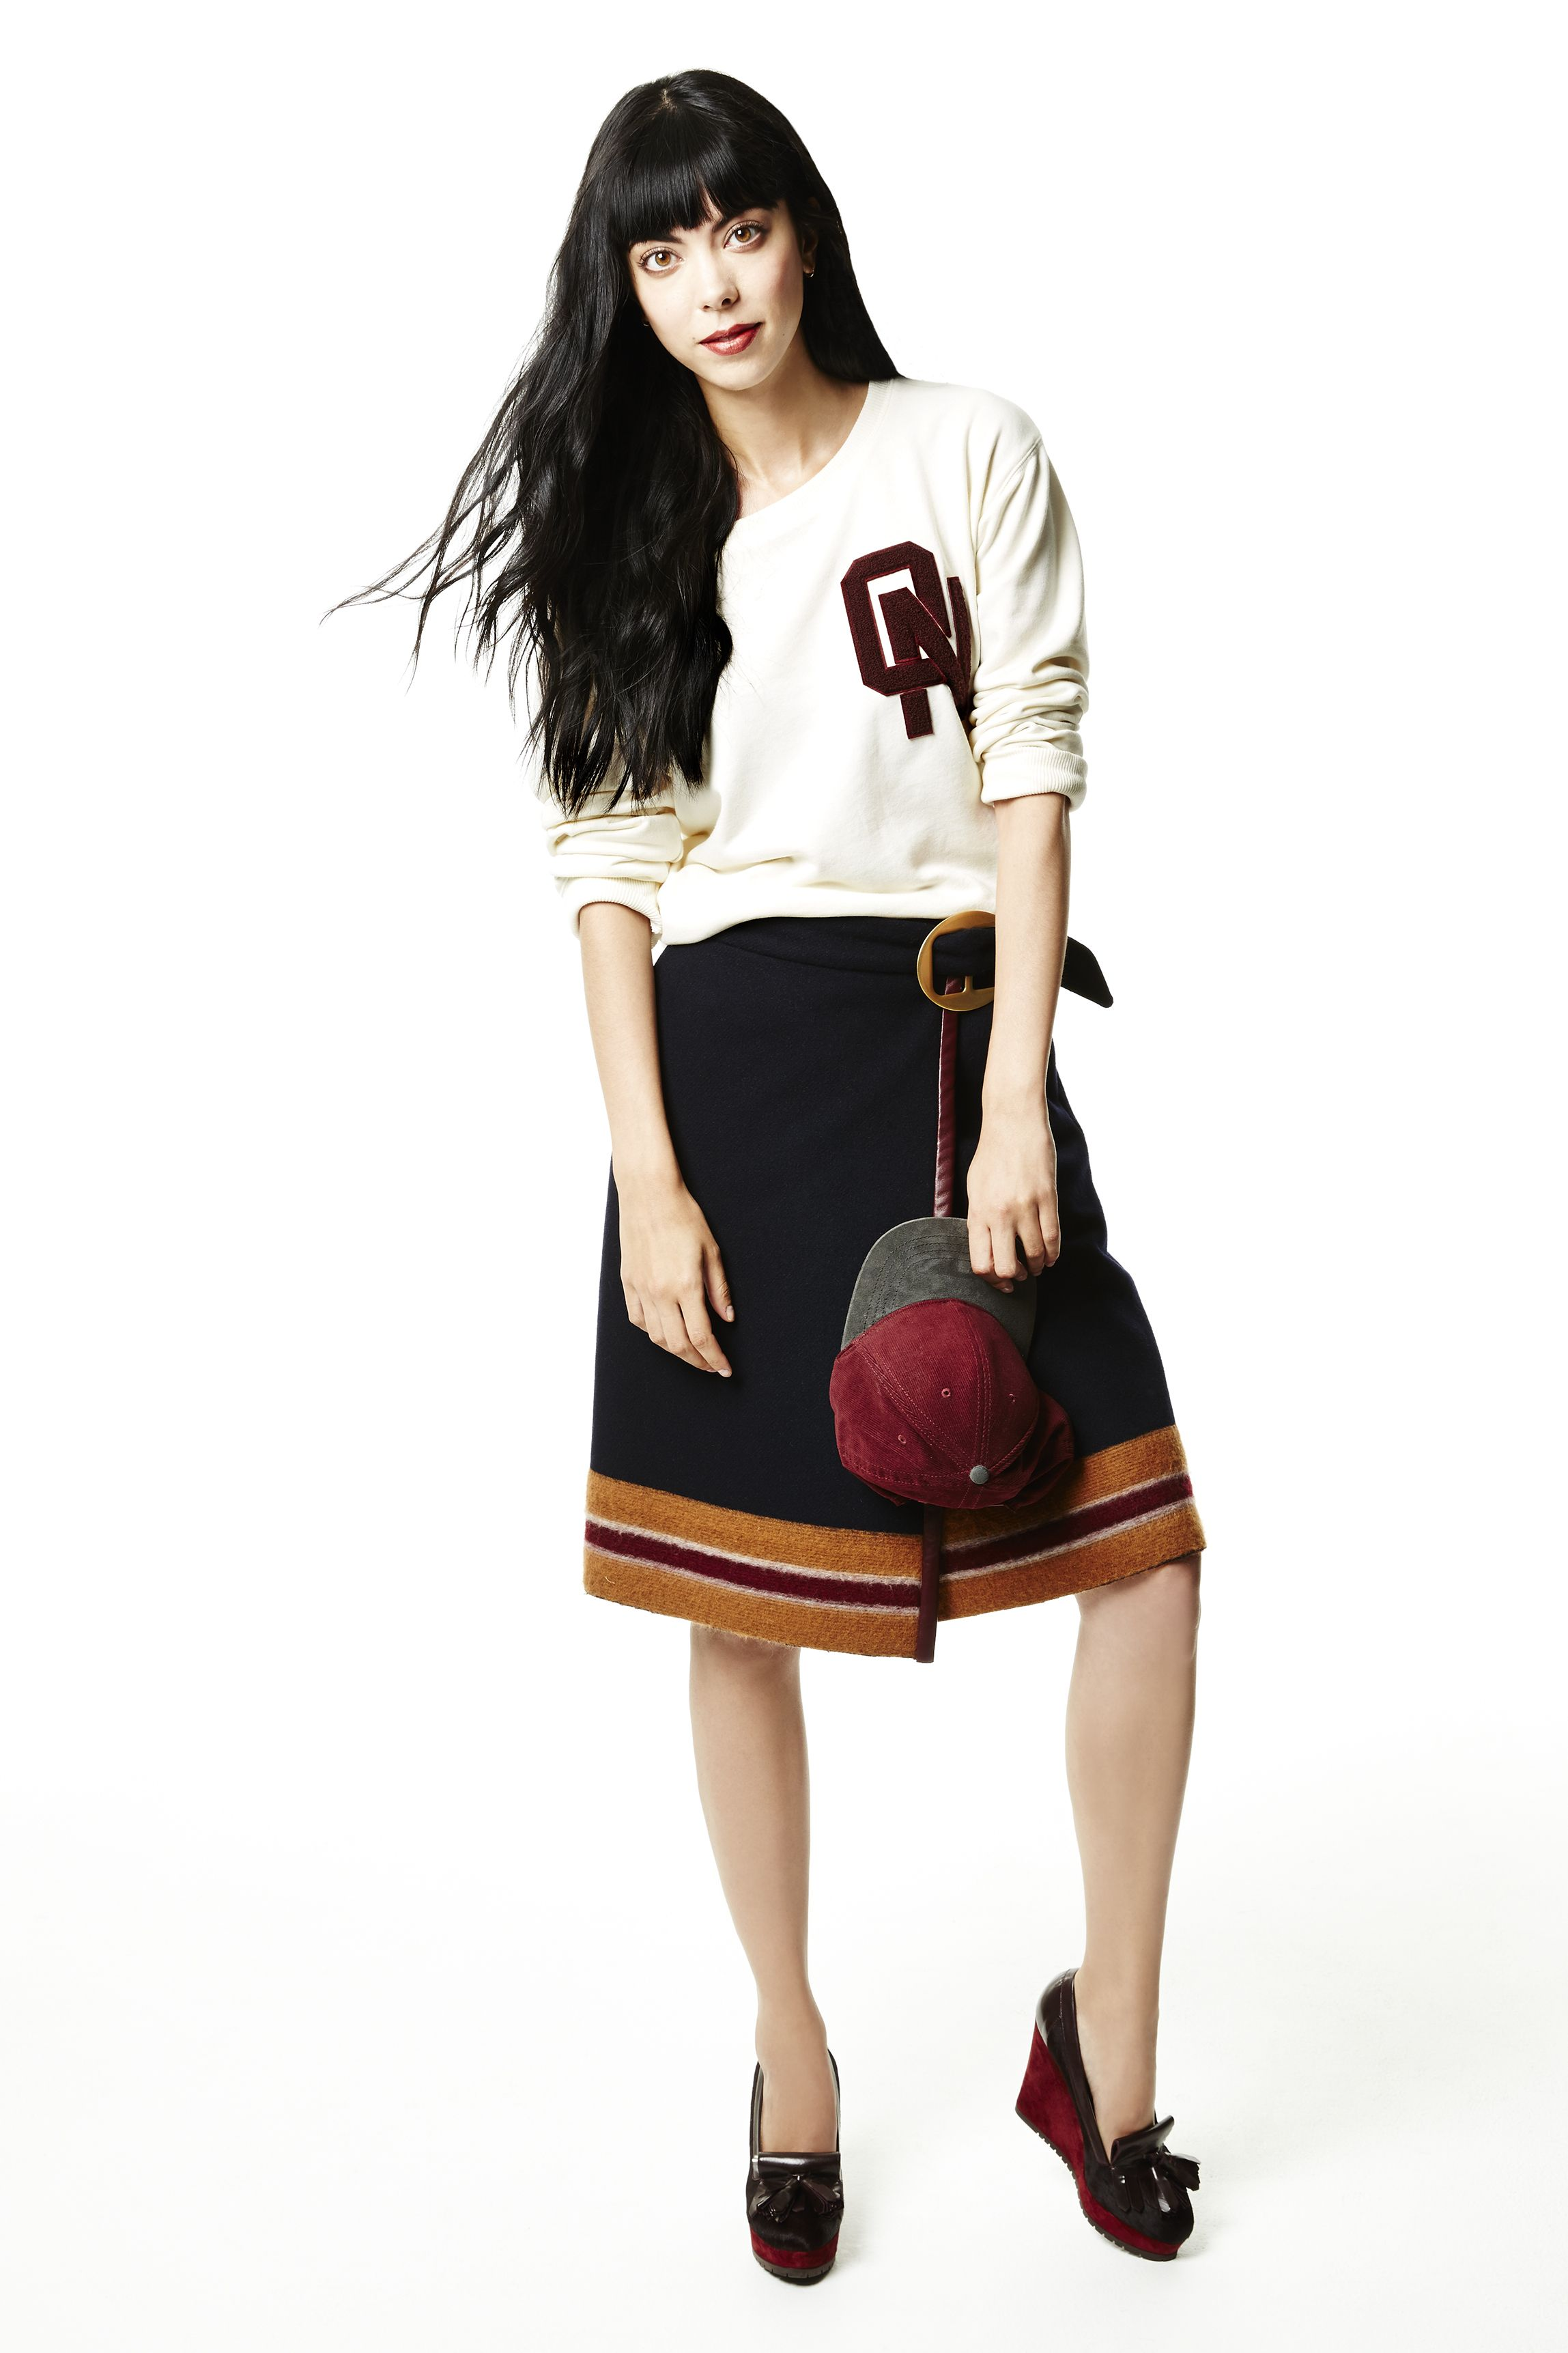 """<p>When you've outgrown the plaid miniskirt uniform, graduate to a knee-length wrap alternative with a striped hem. Pair it with high-heeled wedge tassel loafers, and then make it un-fussy (and totally not Britney-Spears-circa-1999) with sporty details: a baseball cap and a letterman sweatshirt with scrunched-up sleeves.</p><p><em>Old Navy Varsity Sweatshirt, $22, <a href=""""https://ad.doubleclick.net/ddm/clk/294200250&#x3B;121252581&#x3B;m"""" target=""""_blank"""">oldnavy.com</a>&#x3B; Similar Tommy Hilfiger Skirt, $613, <a href=""""http://www.luisaviaroma.com/index.aspx?#ItemSrv.ashx%7cSeasonId=62I&CollectionId=4SY&ItemId=16&VendorColorId=MzIz0&SeasonMemoCode=actual&GenderMemoCode=women&CategoryId=&SubLineMemoCode="""" target=""""_blank"""">luisaviaroma.com</a>&#x3B; Old Navy Colorblocked Baseball Cap,<em> $14.94, <a href=""""https://ad.doubleclick.net/ddm/clk/294200249&#x3B;121252583&#x3B;w"""" target=""""_blank"""">oldnavy.com</a>&#x3B; Longchamp Pénélope Moccasins, $540, <a href=""""http://us.longchamp.com/shoes/penelope/moccasins-8383sdb?sku=33957"""" target=""""_blank"""">longchamp.com</a></em></em></p>"""